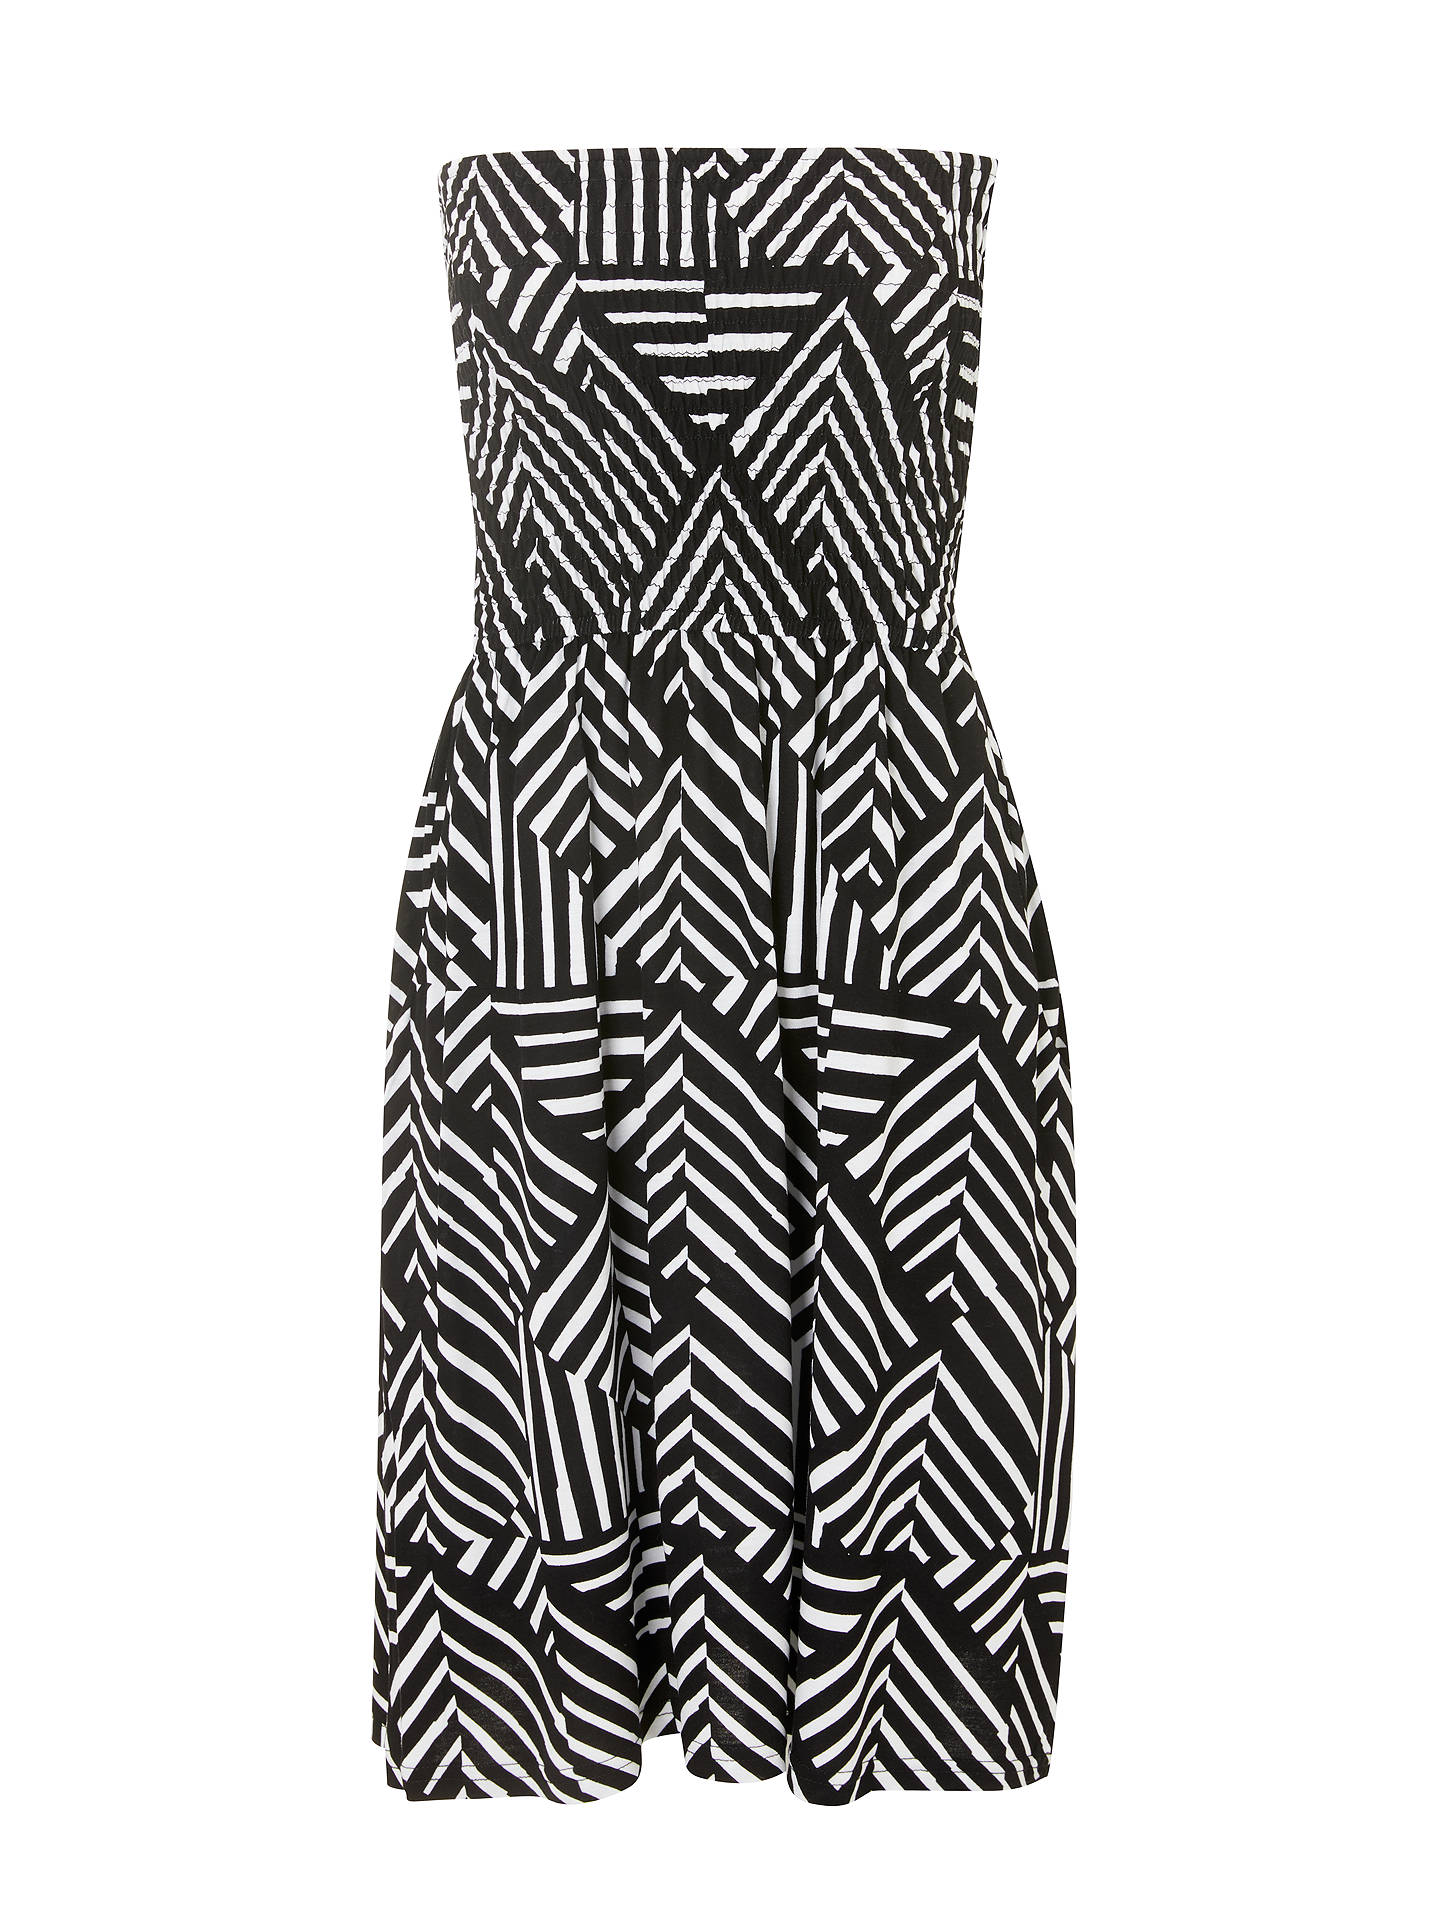 Buy John Lewis & Partners Diamond Geo Print Bandeau Jersey Dress, Black/Multi, S Online at johnlewis.com